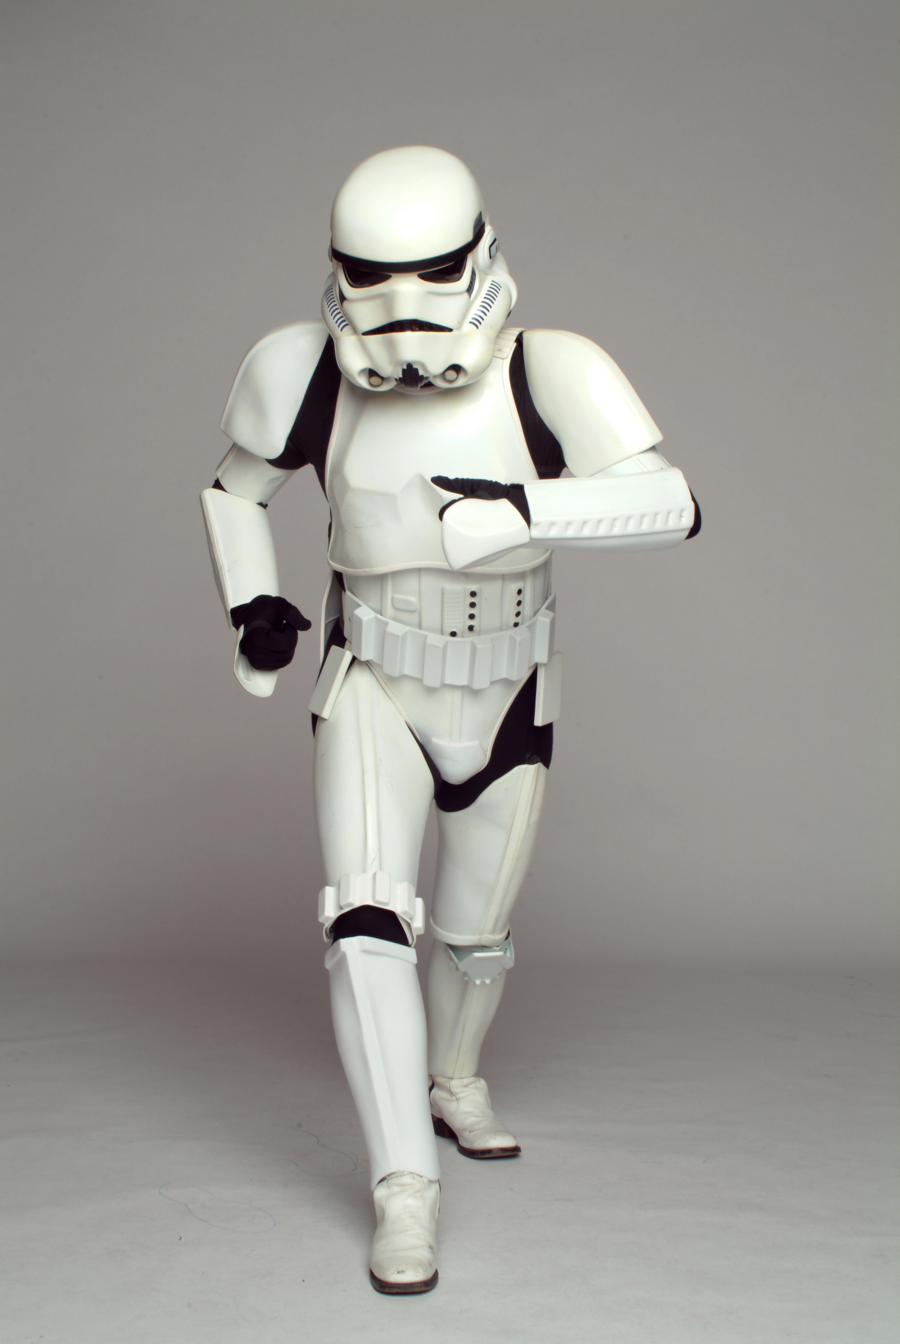 The Stormtrooper costume created by John Mollo.